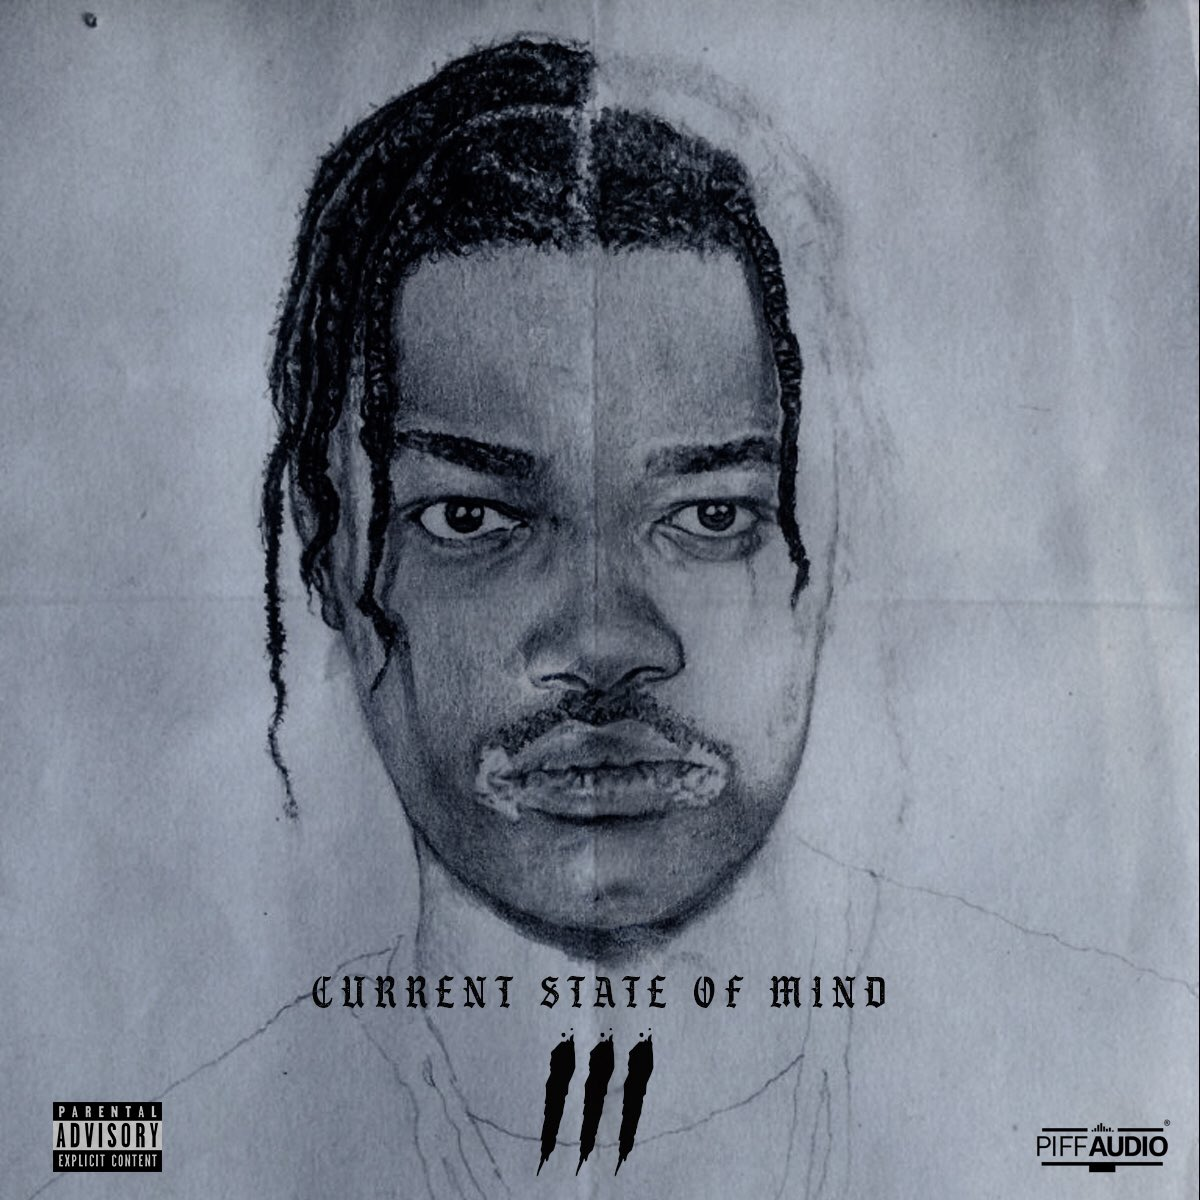 zoocci coke dope New Single Released By Zoocci Coke Dope Titled 'Current State Of Mind III' Has Dropped [Listen] D675kNXWkAEvYq5